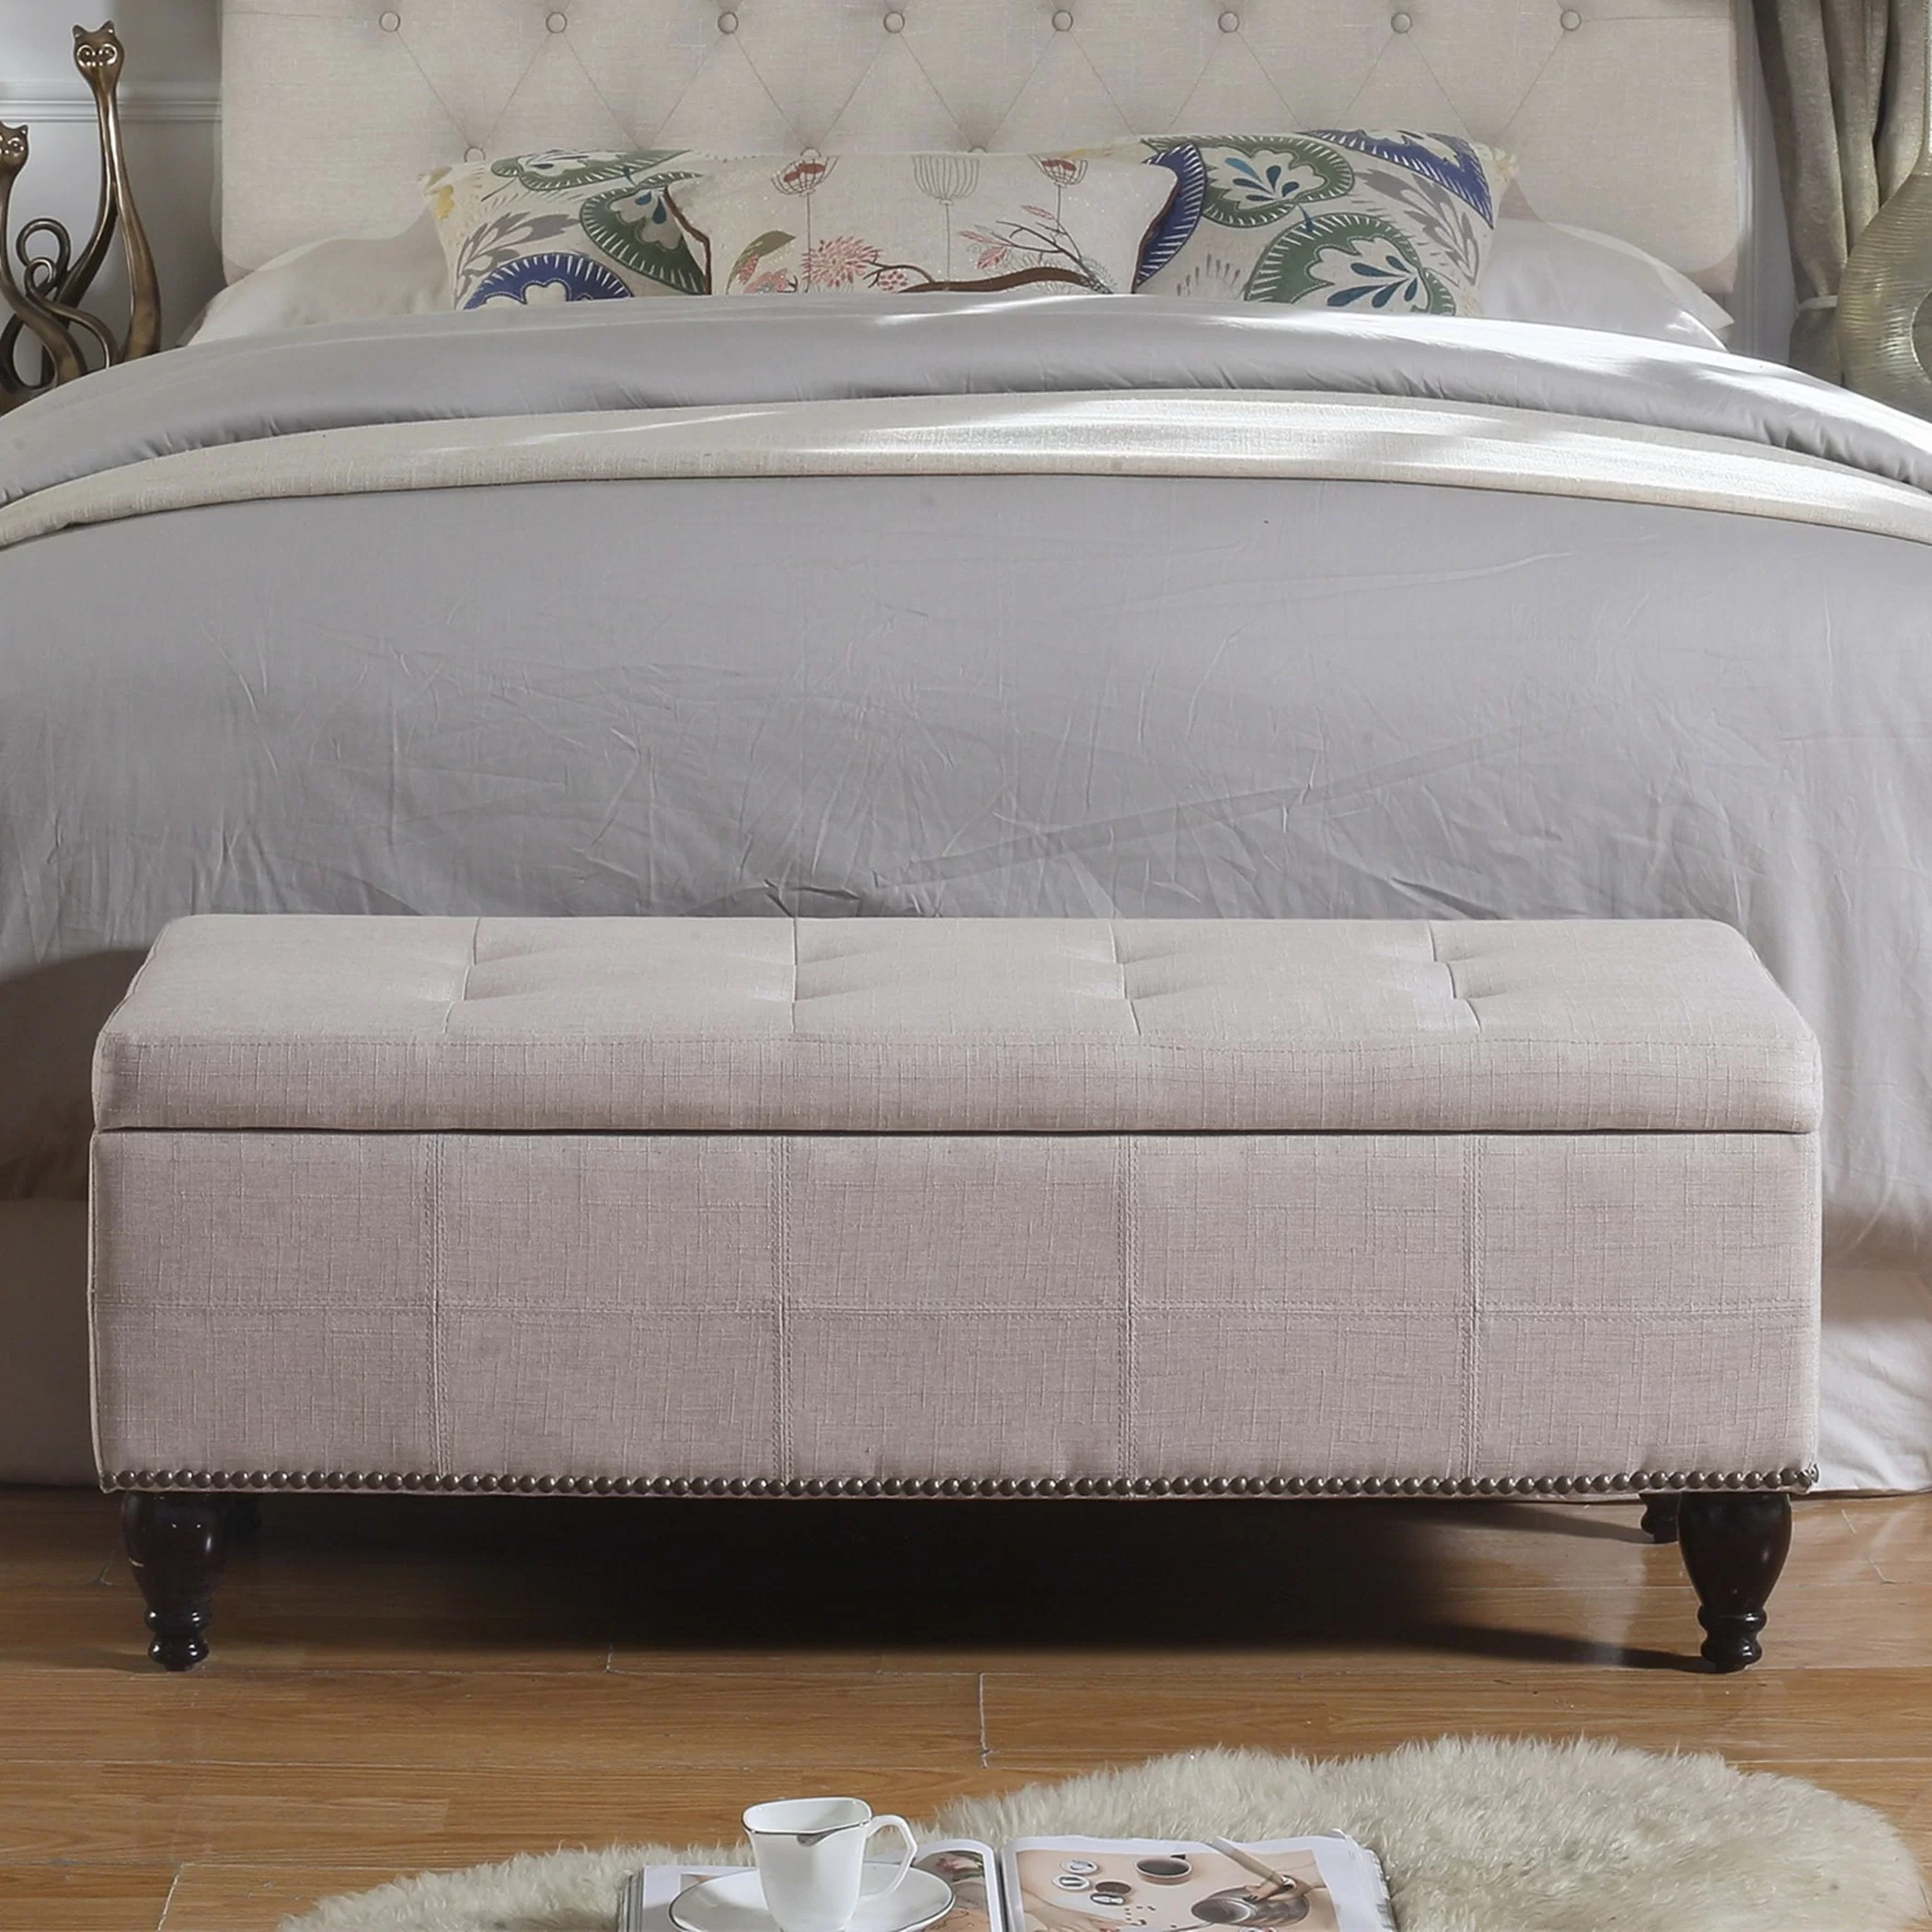 Bed End Storage Darrah Upholstered Storage Bench